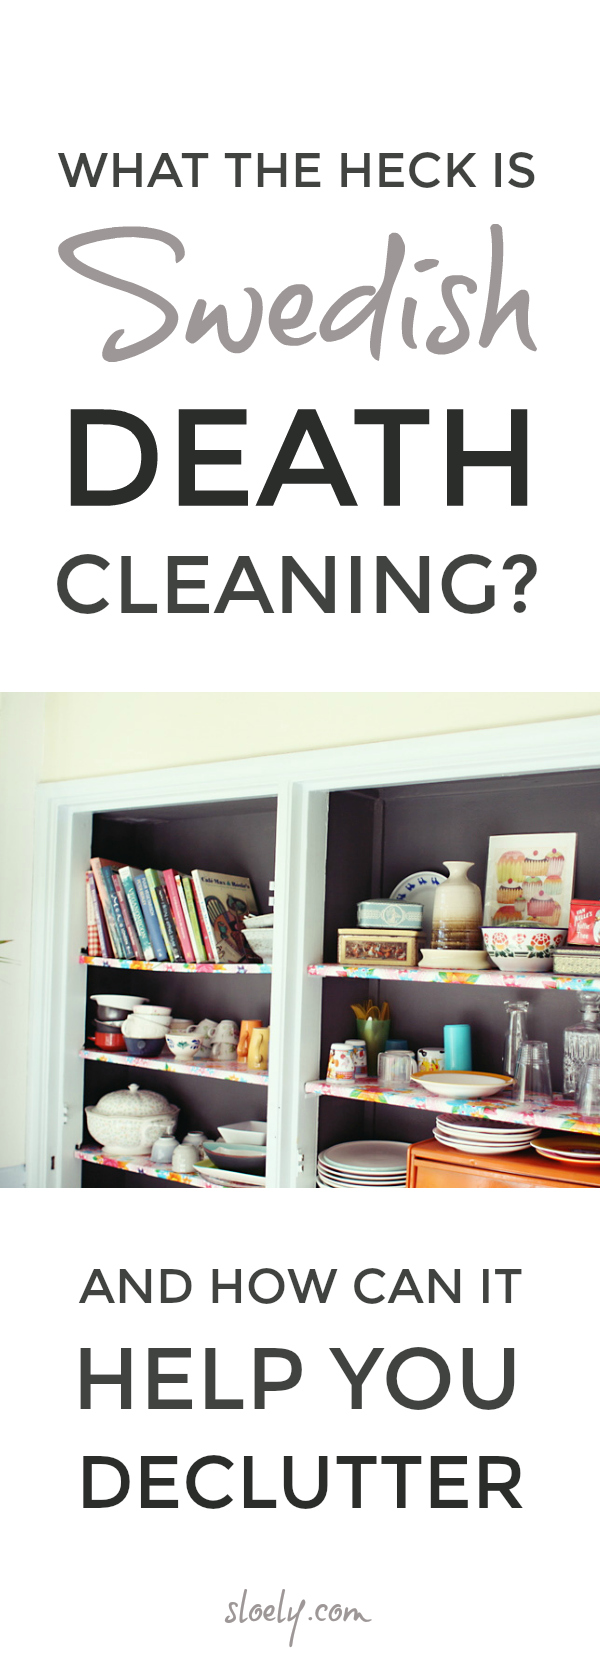 Declutter and organize your home and life when you're feeling overwhelmed with the latest ideas and tips from the best selling Swedish Death Cleaning book which will help you rise to the decluttering challenge and learn to live clutter free